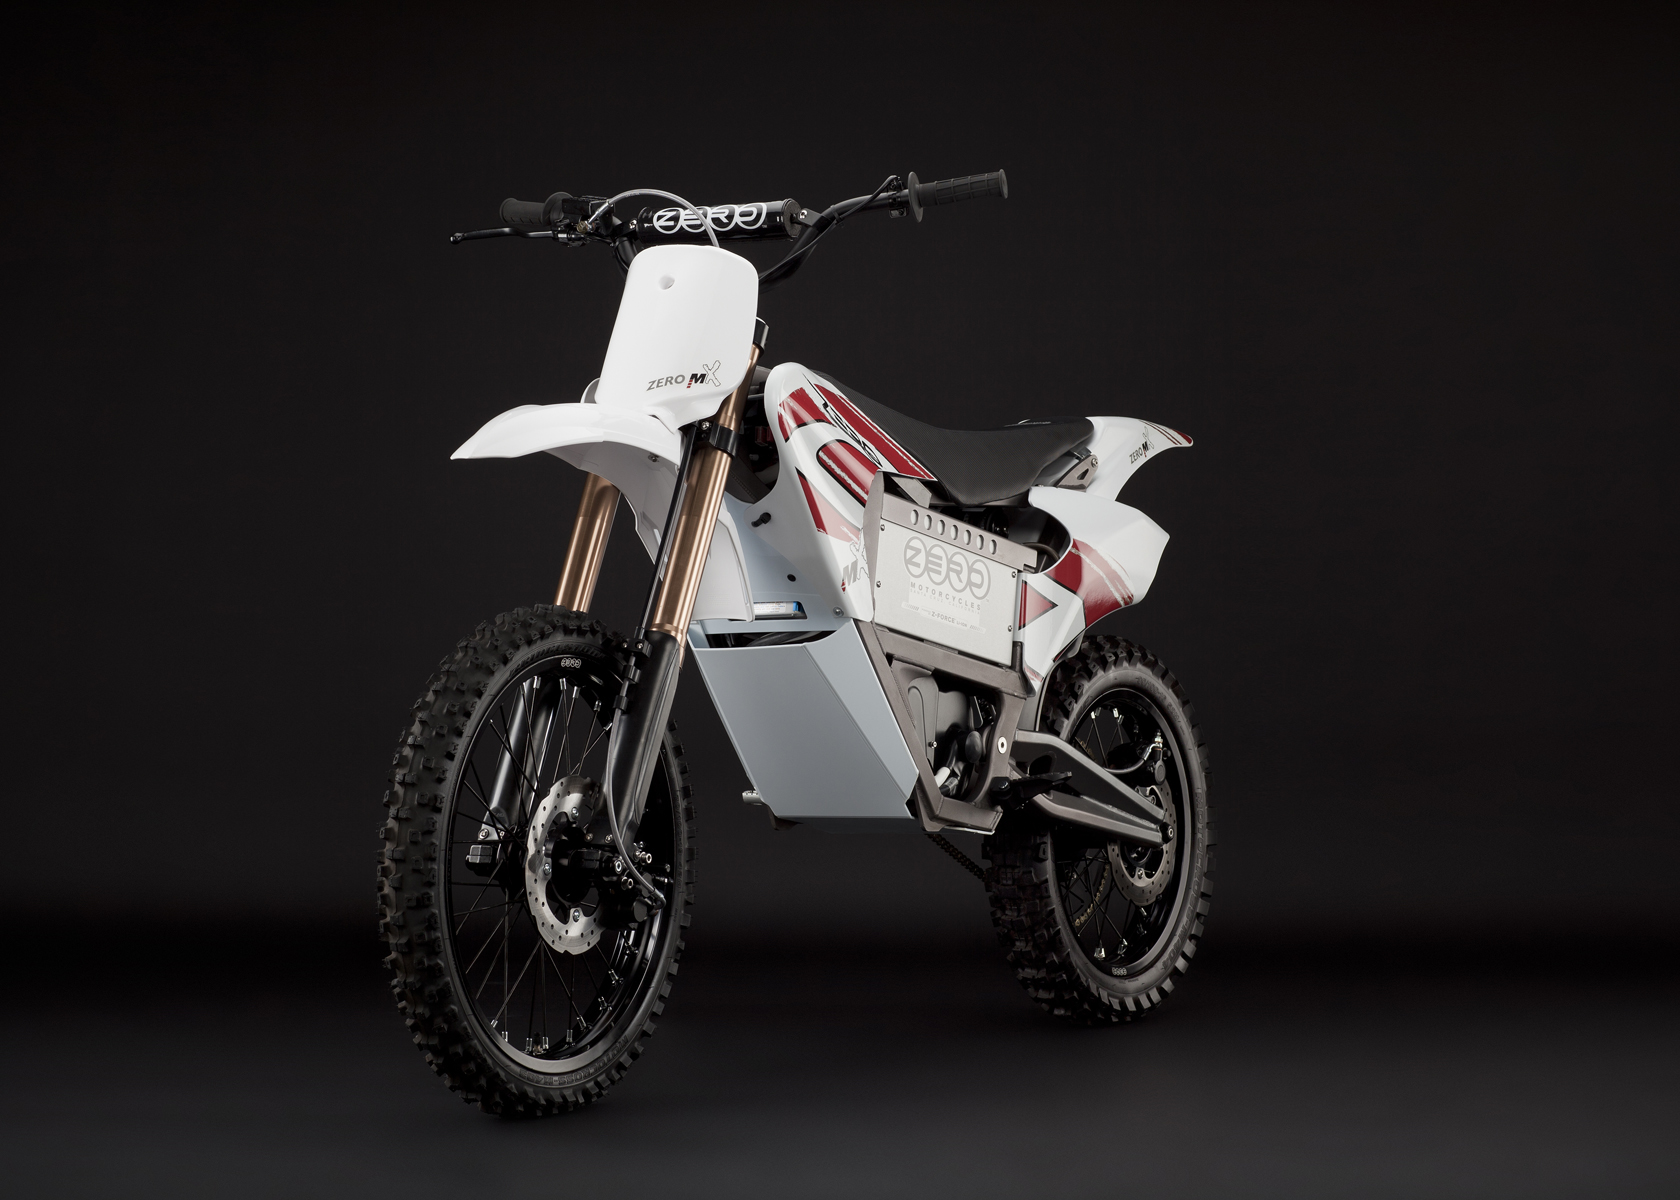 2011 Zero MX Electric Motorcycle: Angle Left, Dirt Model